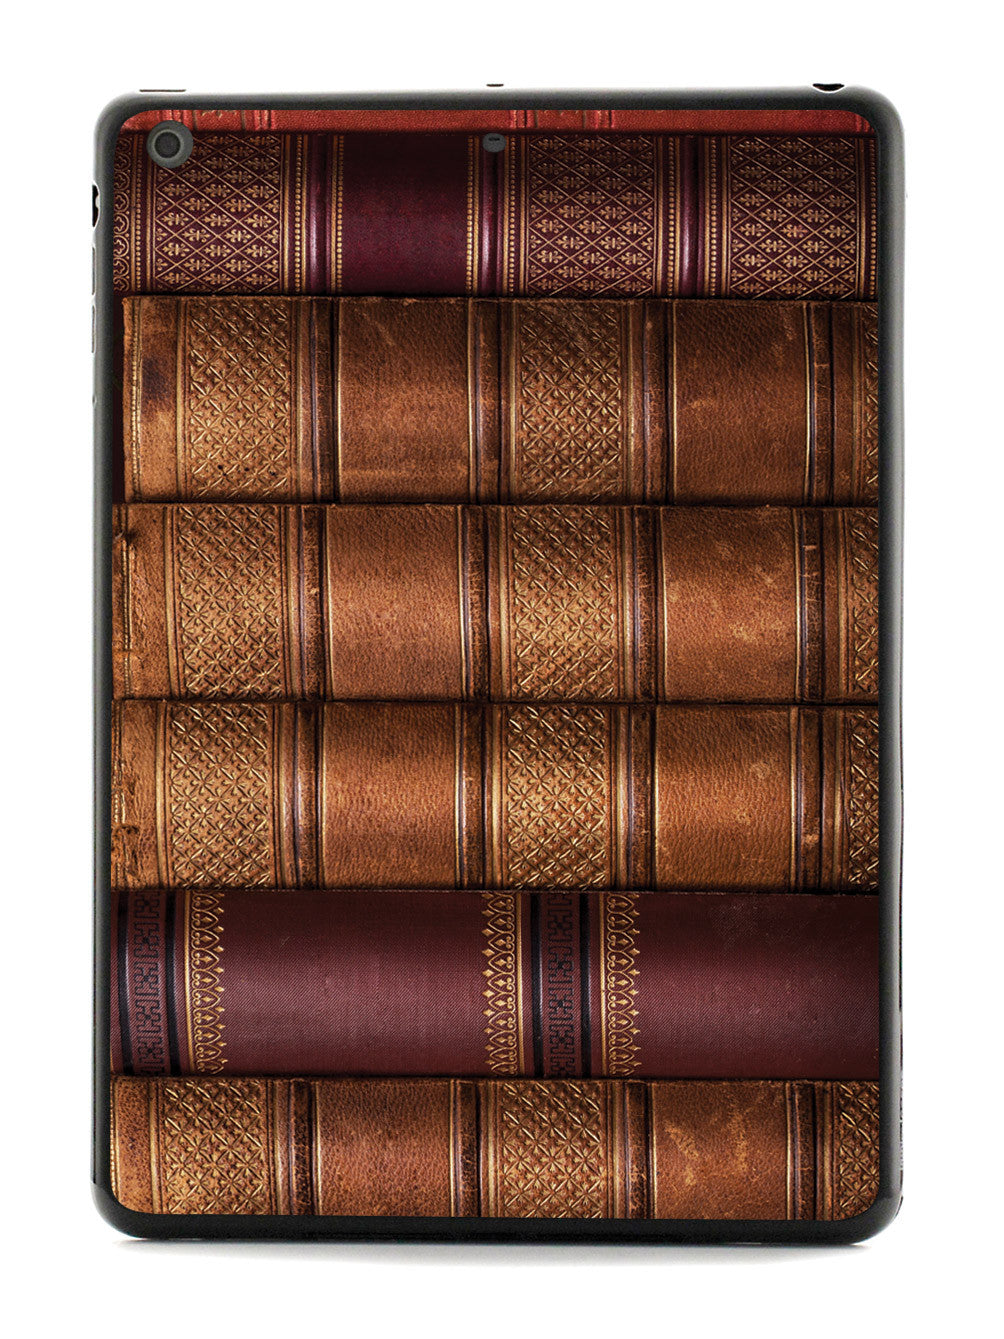 Ancient Book Spines - Black Case